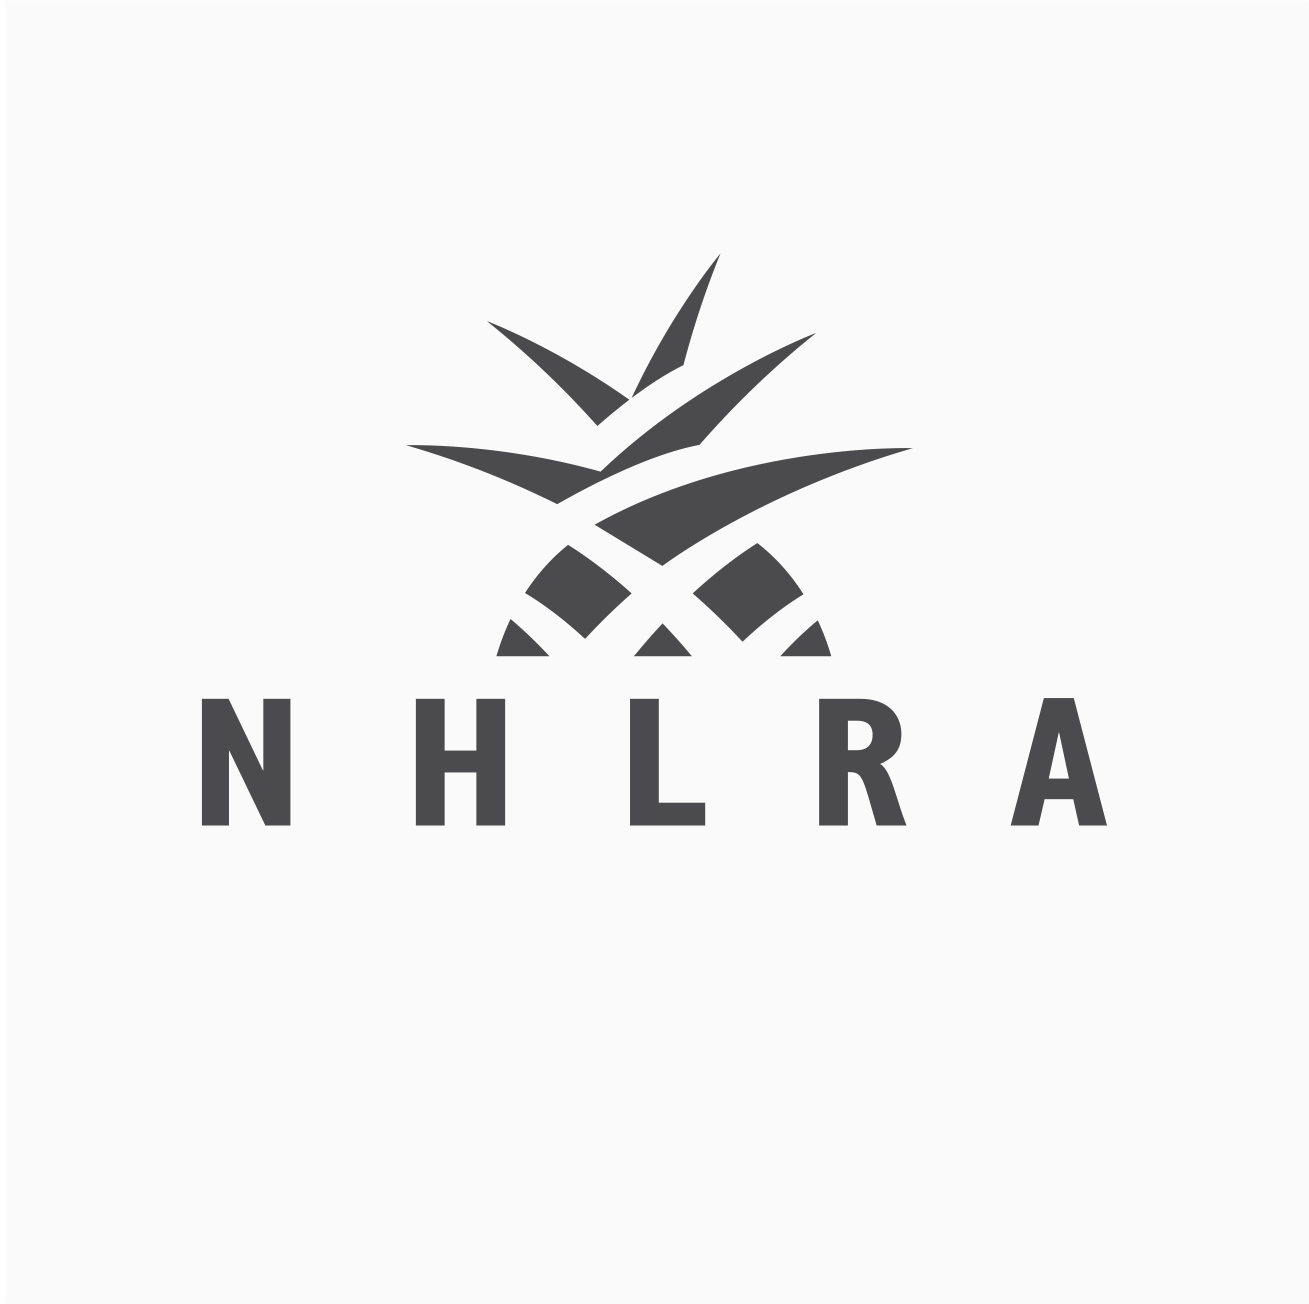 New Hampshire Lodging and Restaurant Association